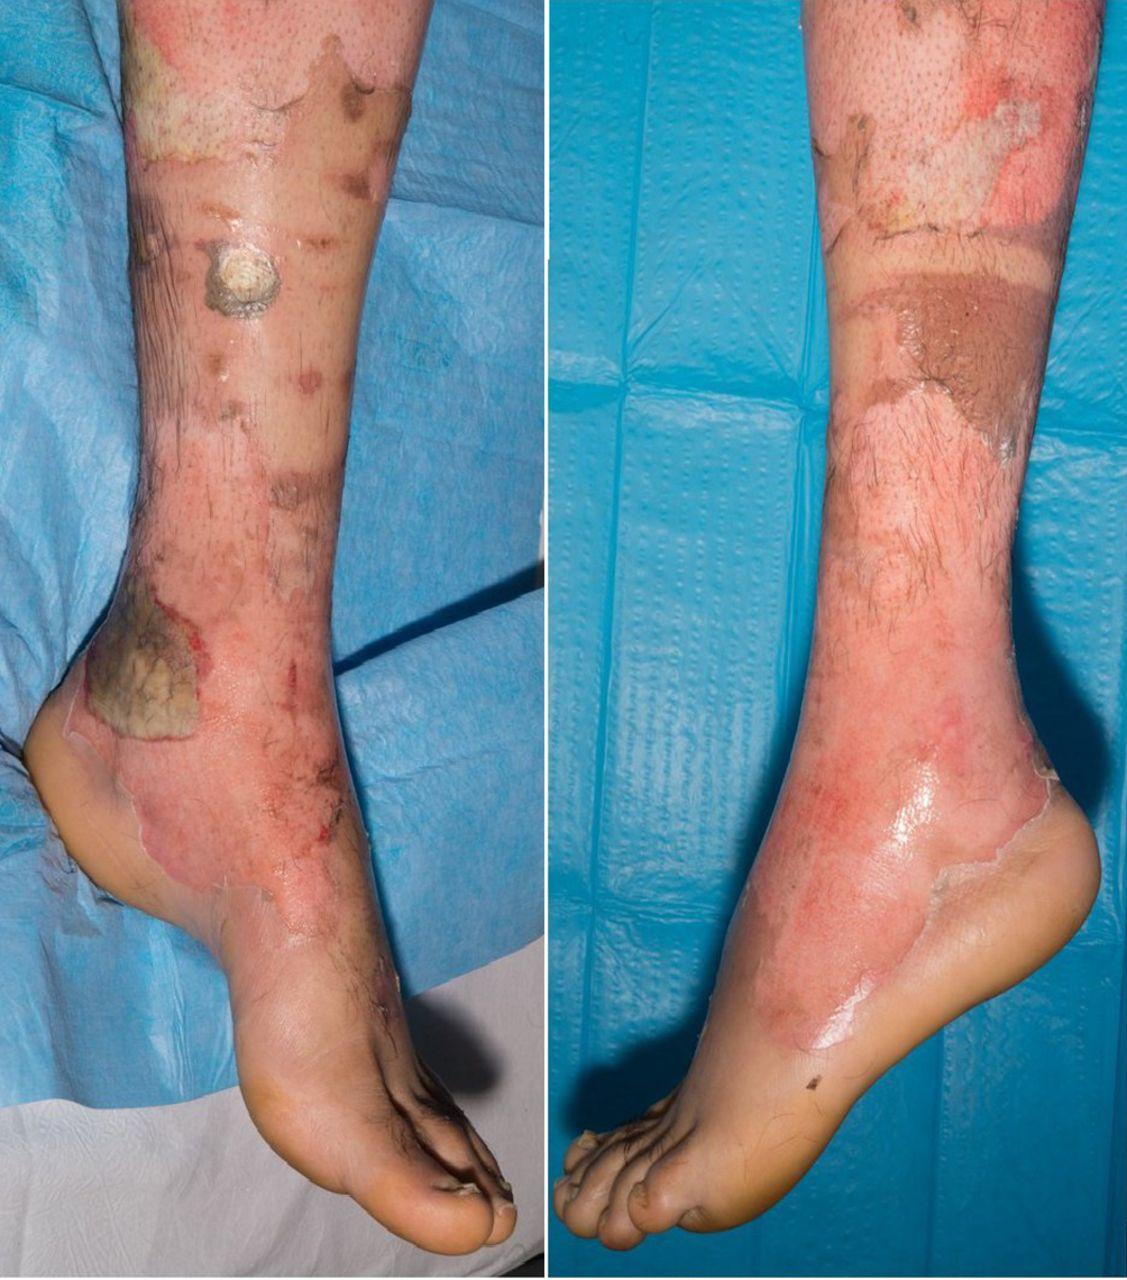 Ongoing effects of burns | The BMJ